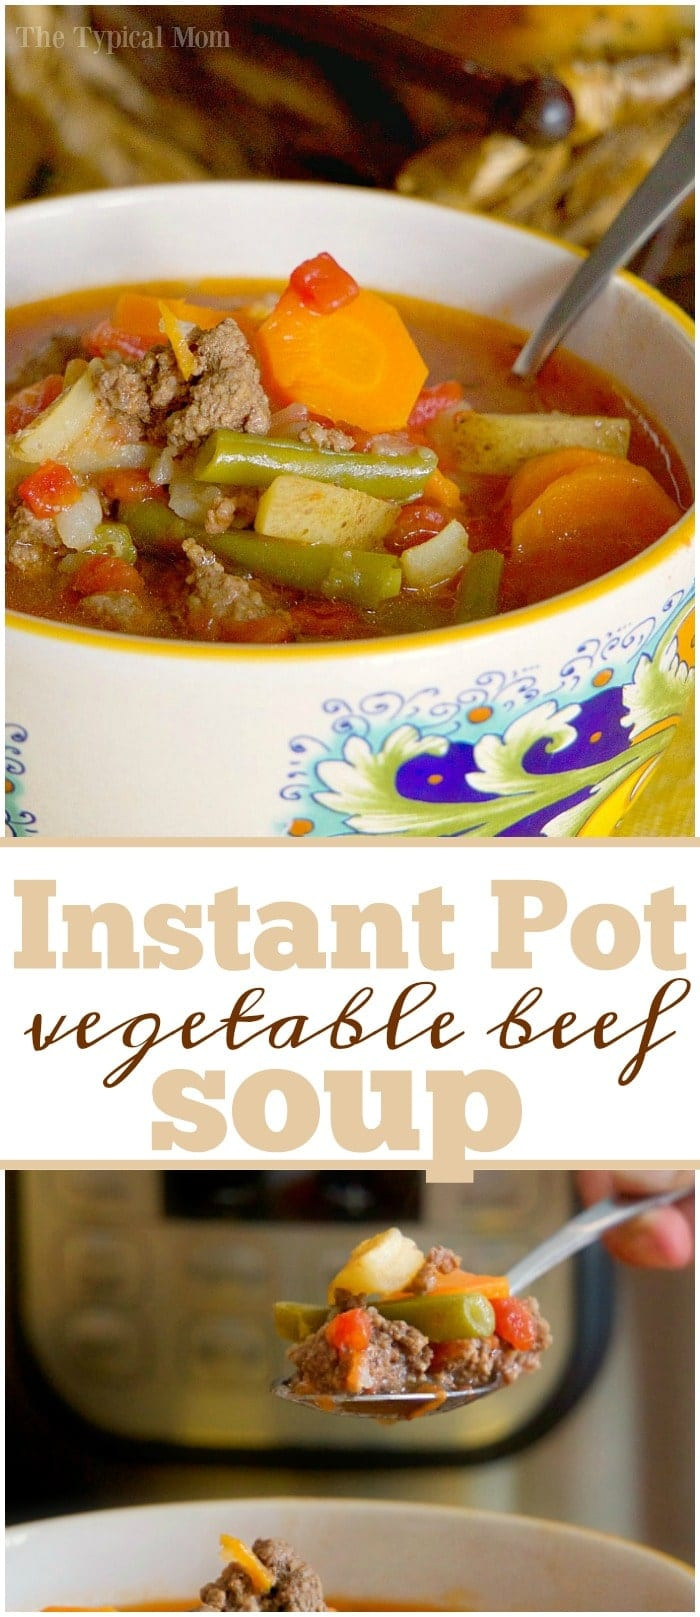 Instant Pot Healthy Soup Recipes  Instant Pot Ve able Beef Soup · The Typical Mom